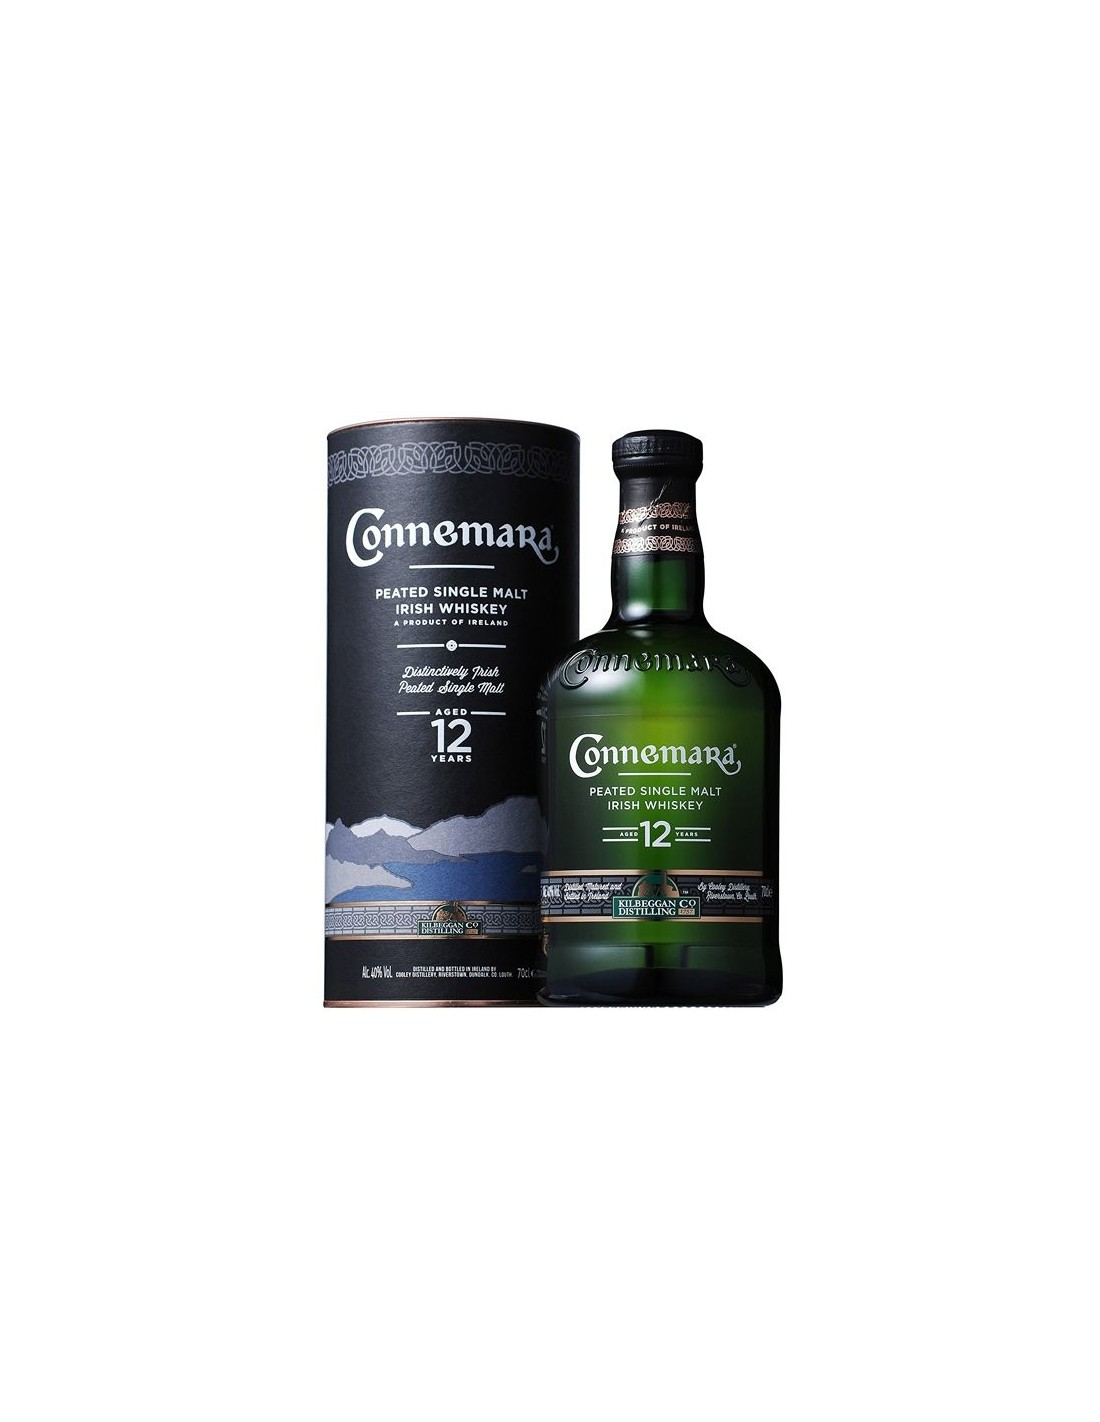 Whisky Connemara Peated Single Malt, 12 ani, 40% alc., 0.7L, Irlanda